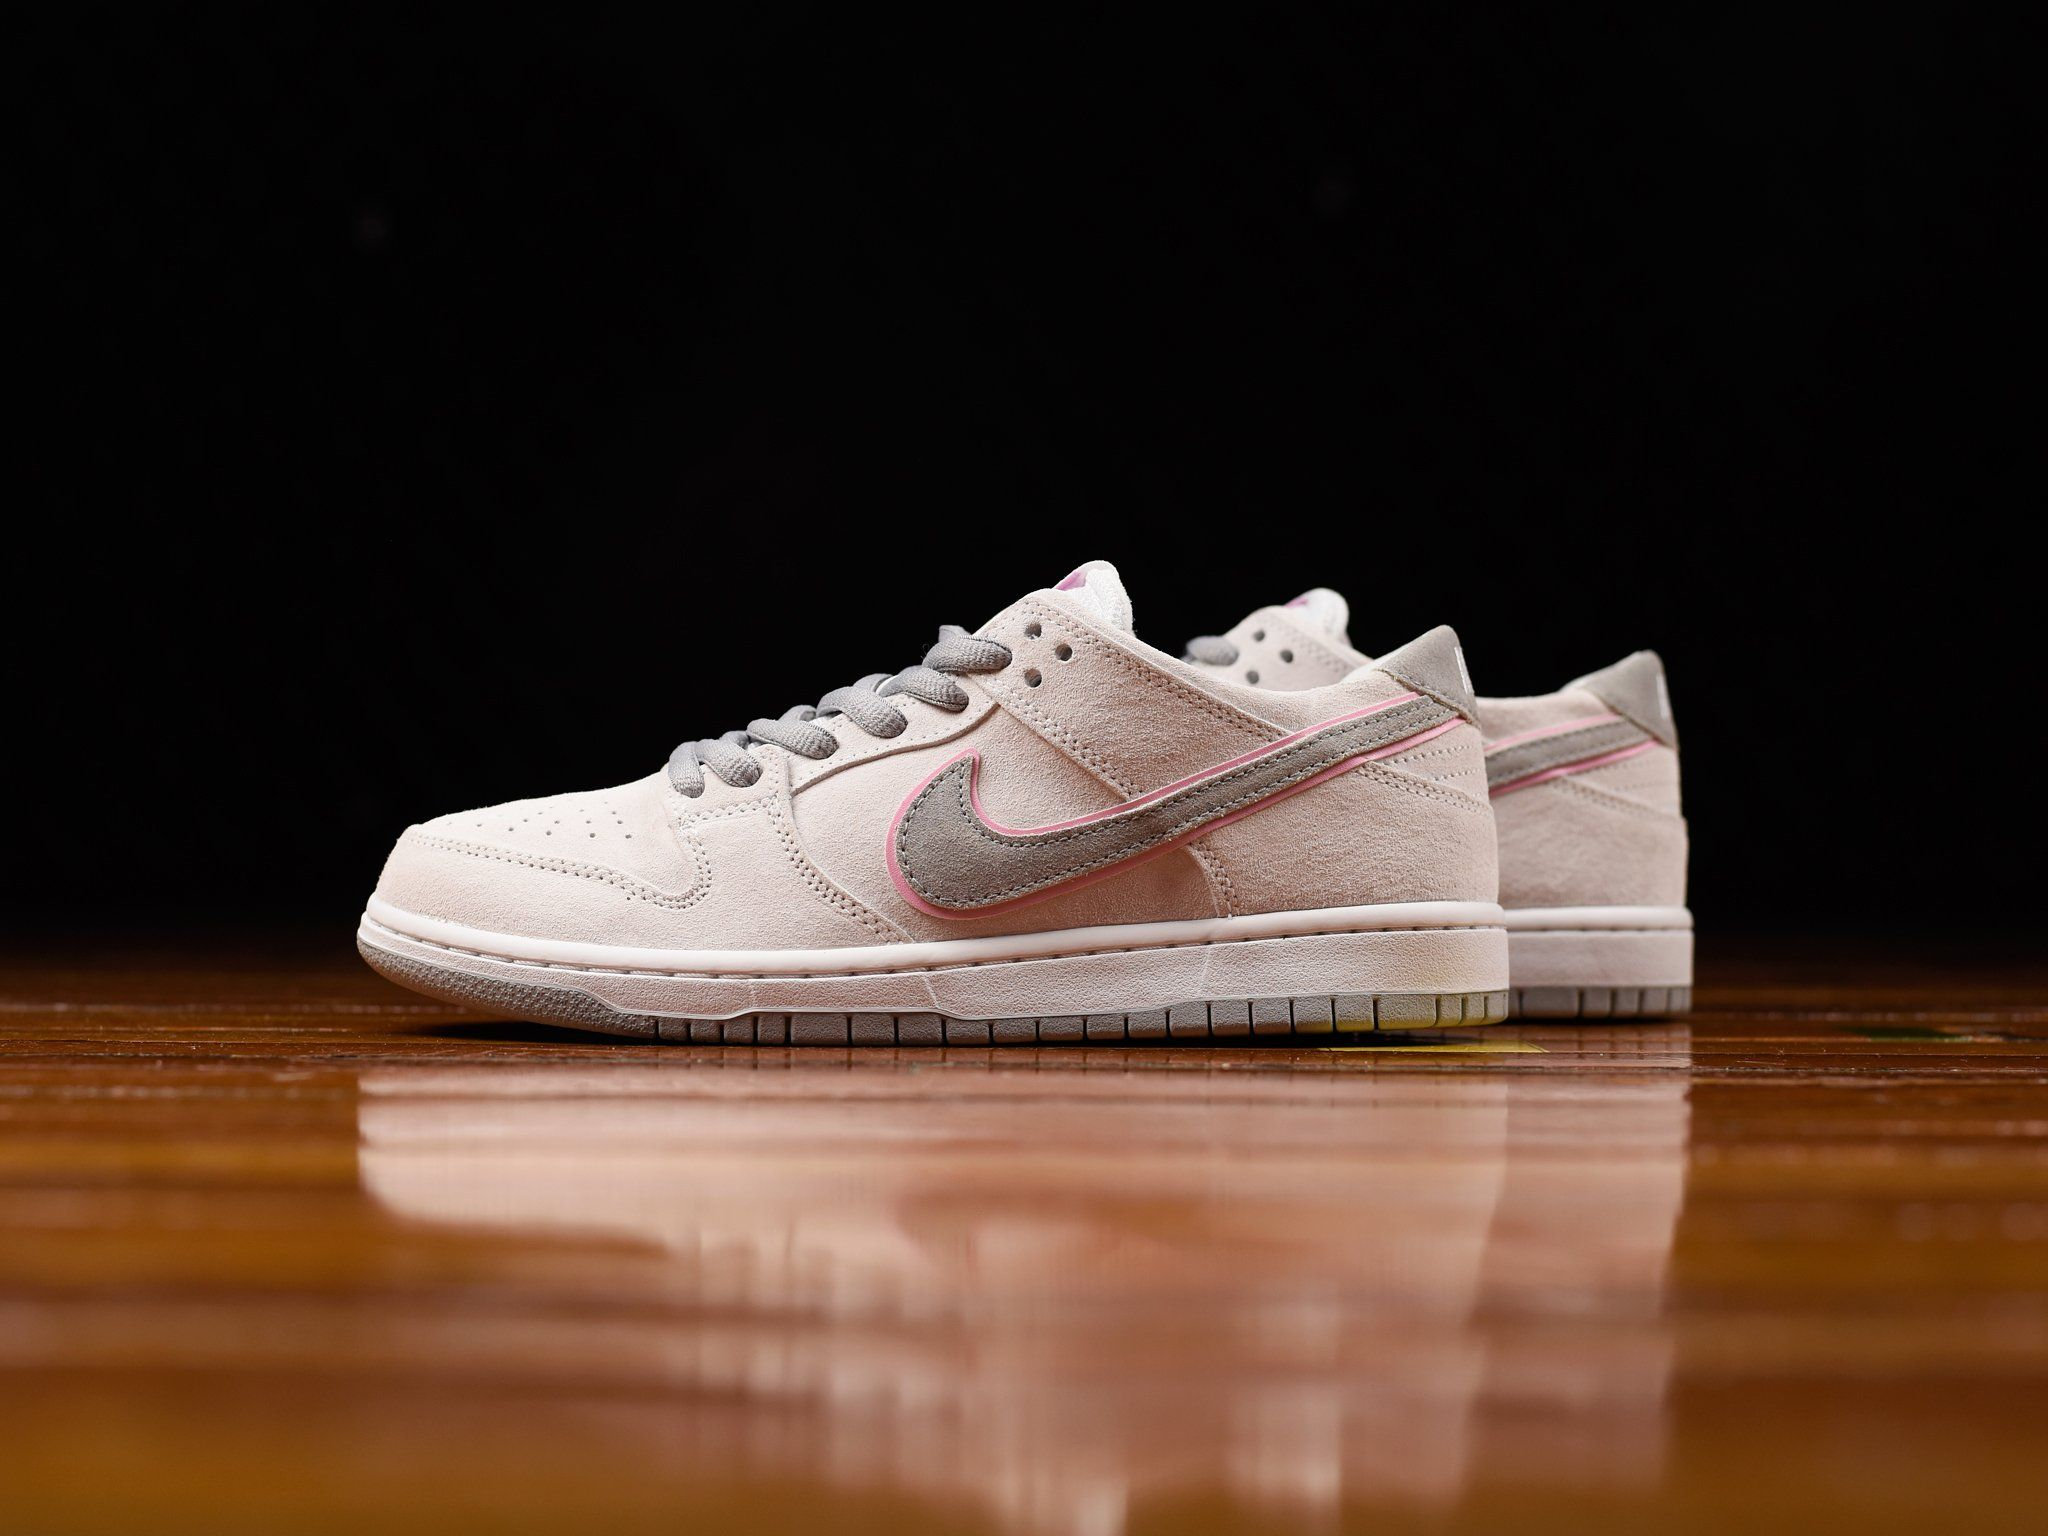 A Closer Look At The Nike SB Dunk Low Ishod Wair In White  1b9b9b4070